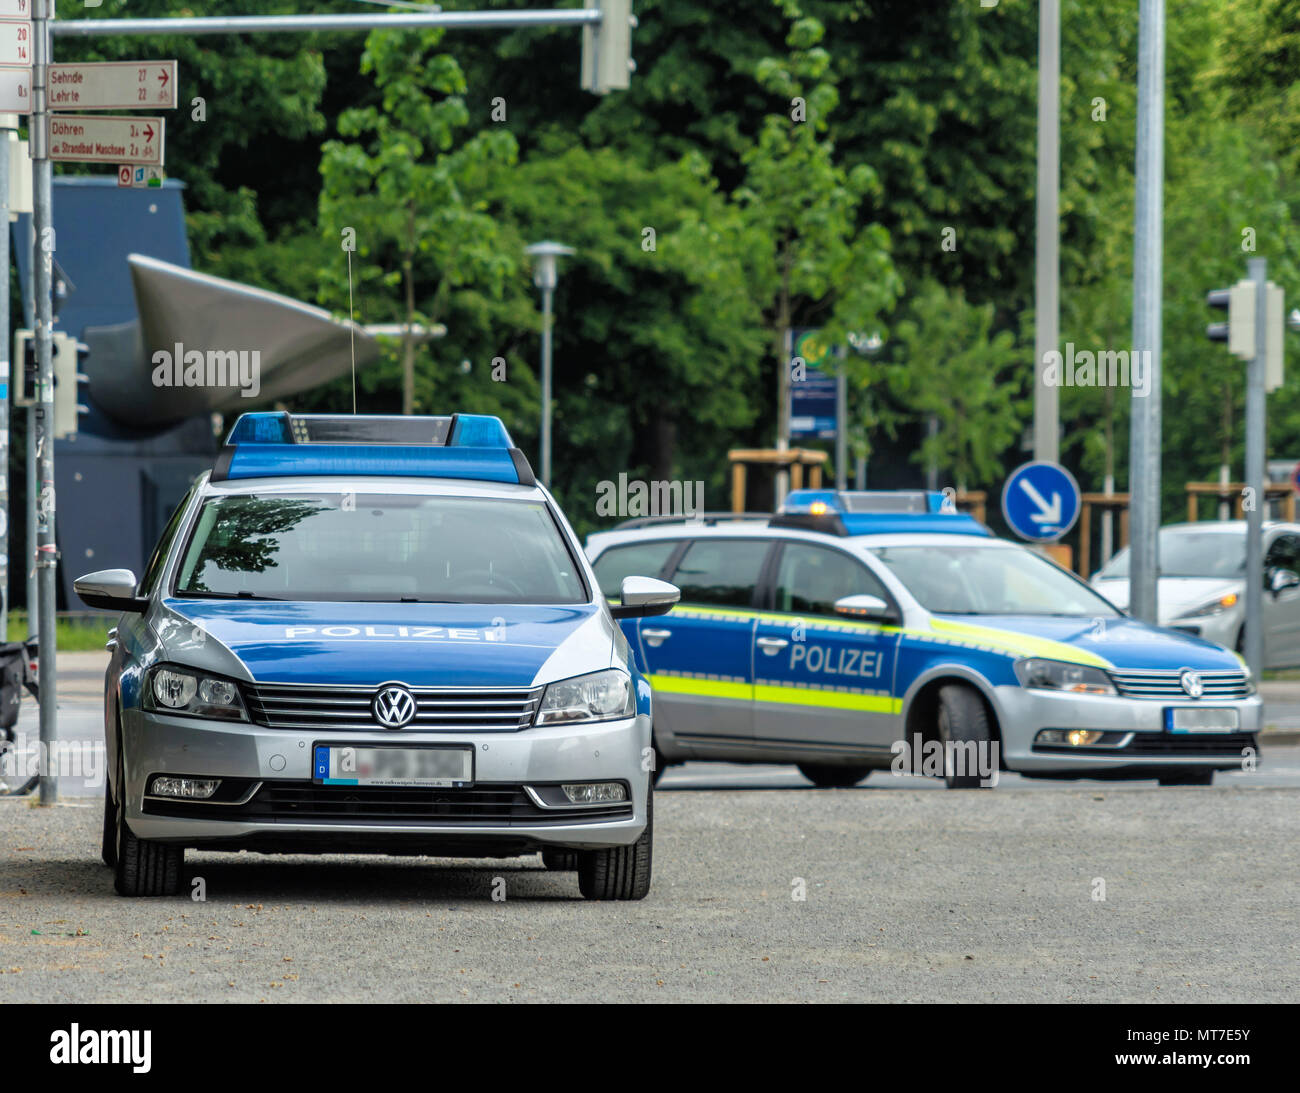 Used Police Cars >> Two German Police Cars With Grey And Blue Markings Waiting